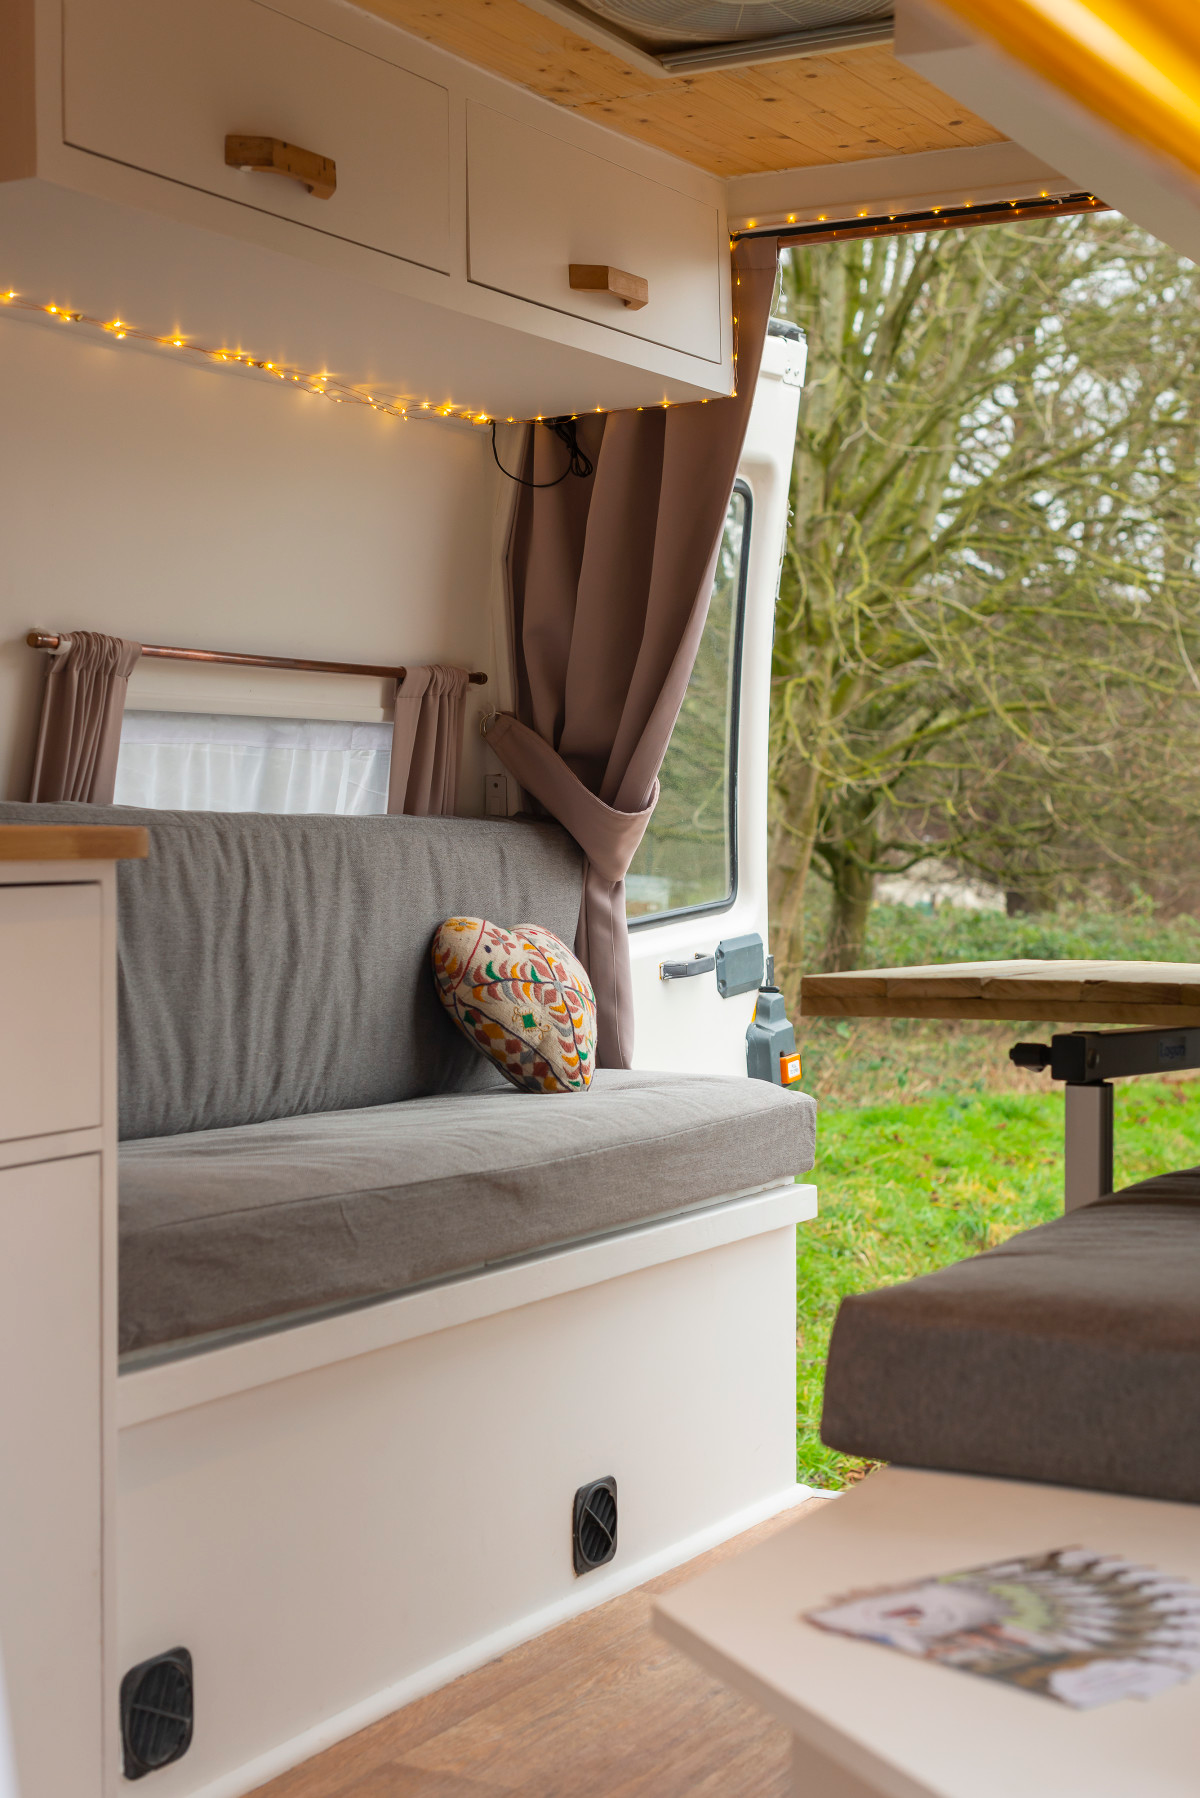 Gloriously Camper-van with cool, modern and funky urban interior stylings.